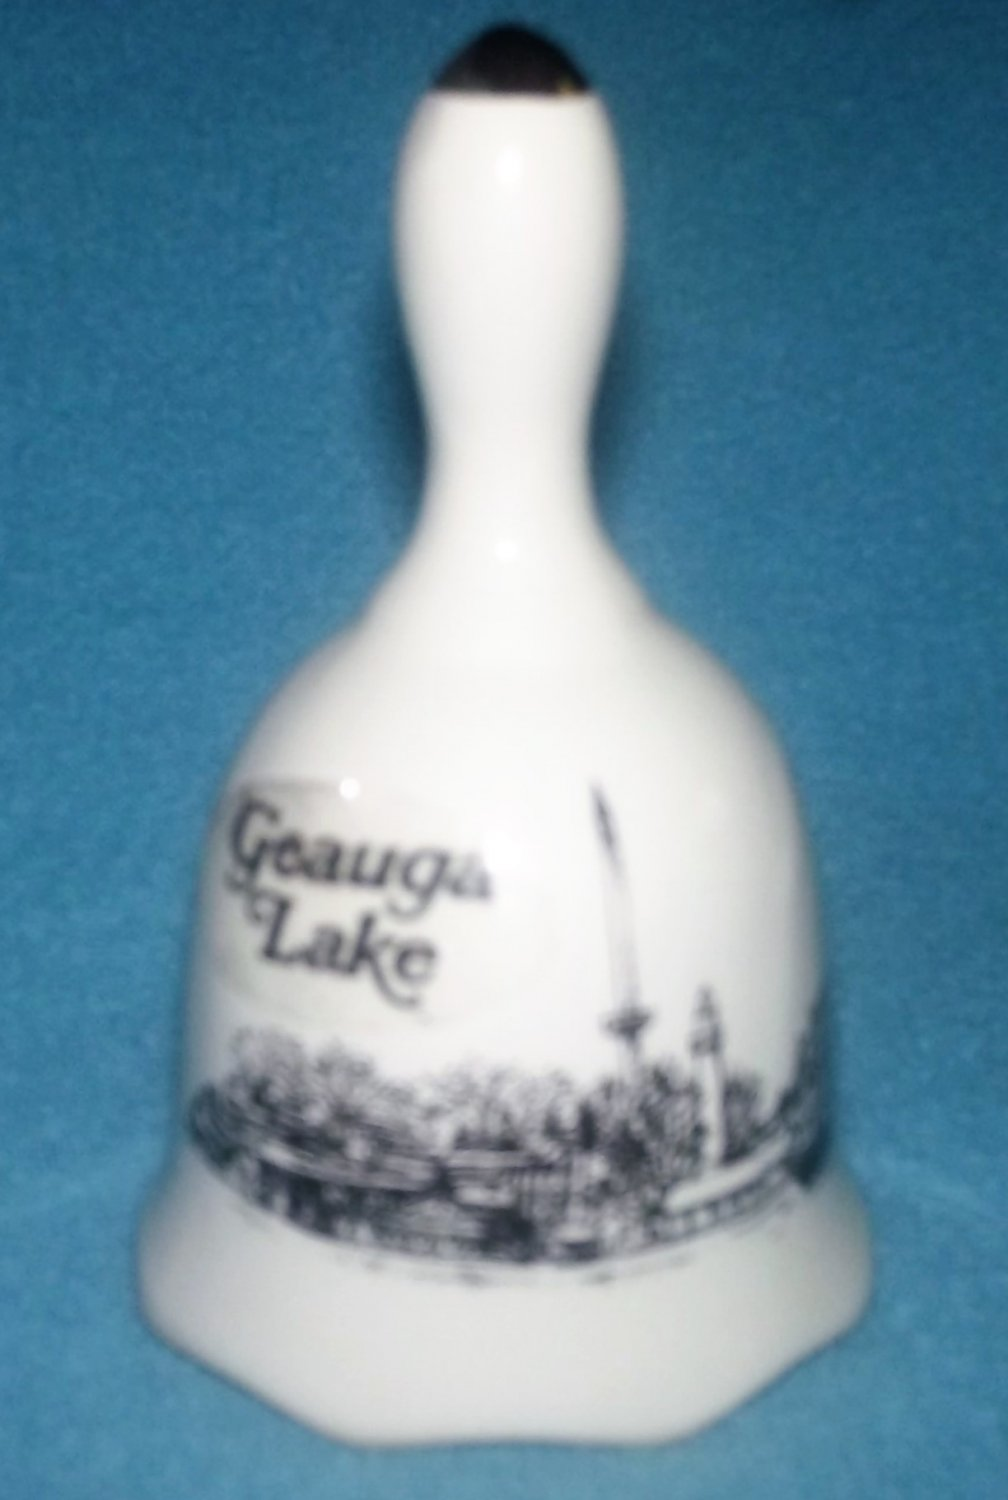 GEAUGA LAKE, OHIO Mini Souvenir BELL Made in Taiwan 1980's Vintage